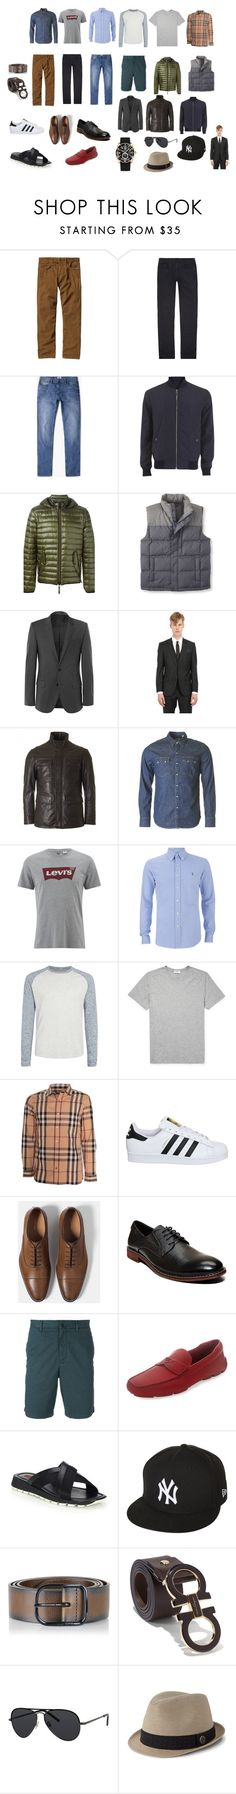 """Capsule Wardrobe For Men"" by thaismalinosk on Polyvore featuring Patagonia, J Brand, MANGO MAN, Versace, Duvetica, L.L.Bean, HUGO, Levi's, SELECTED e Frame Denim"